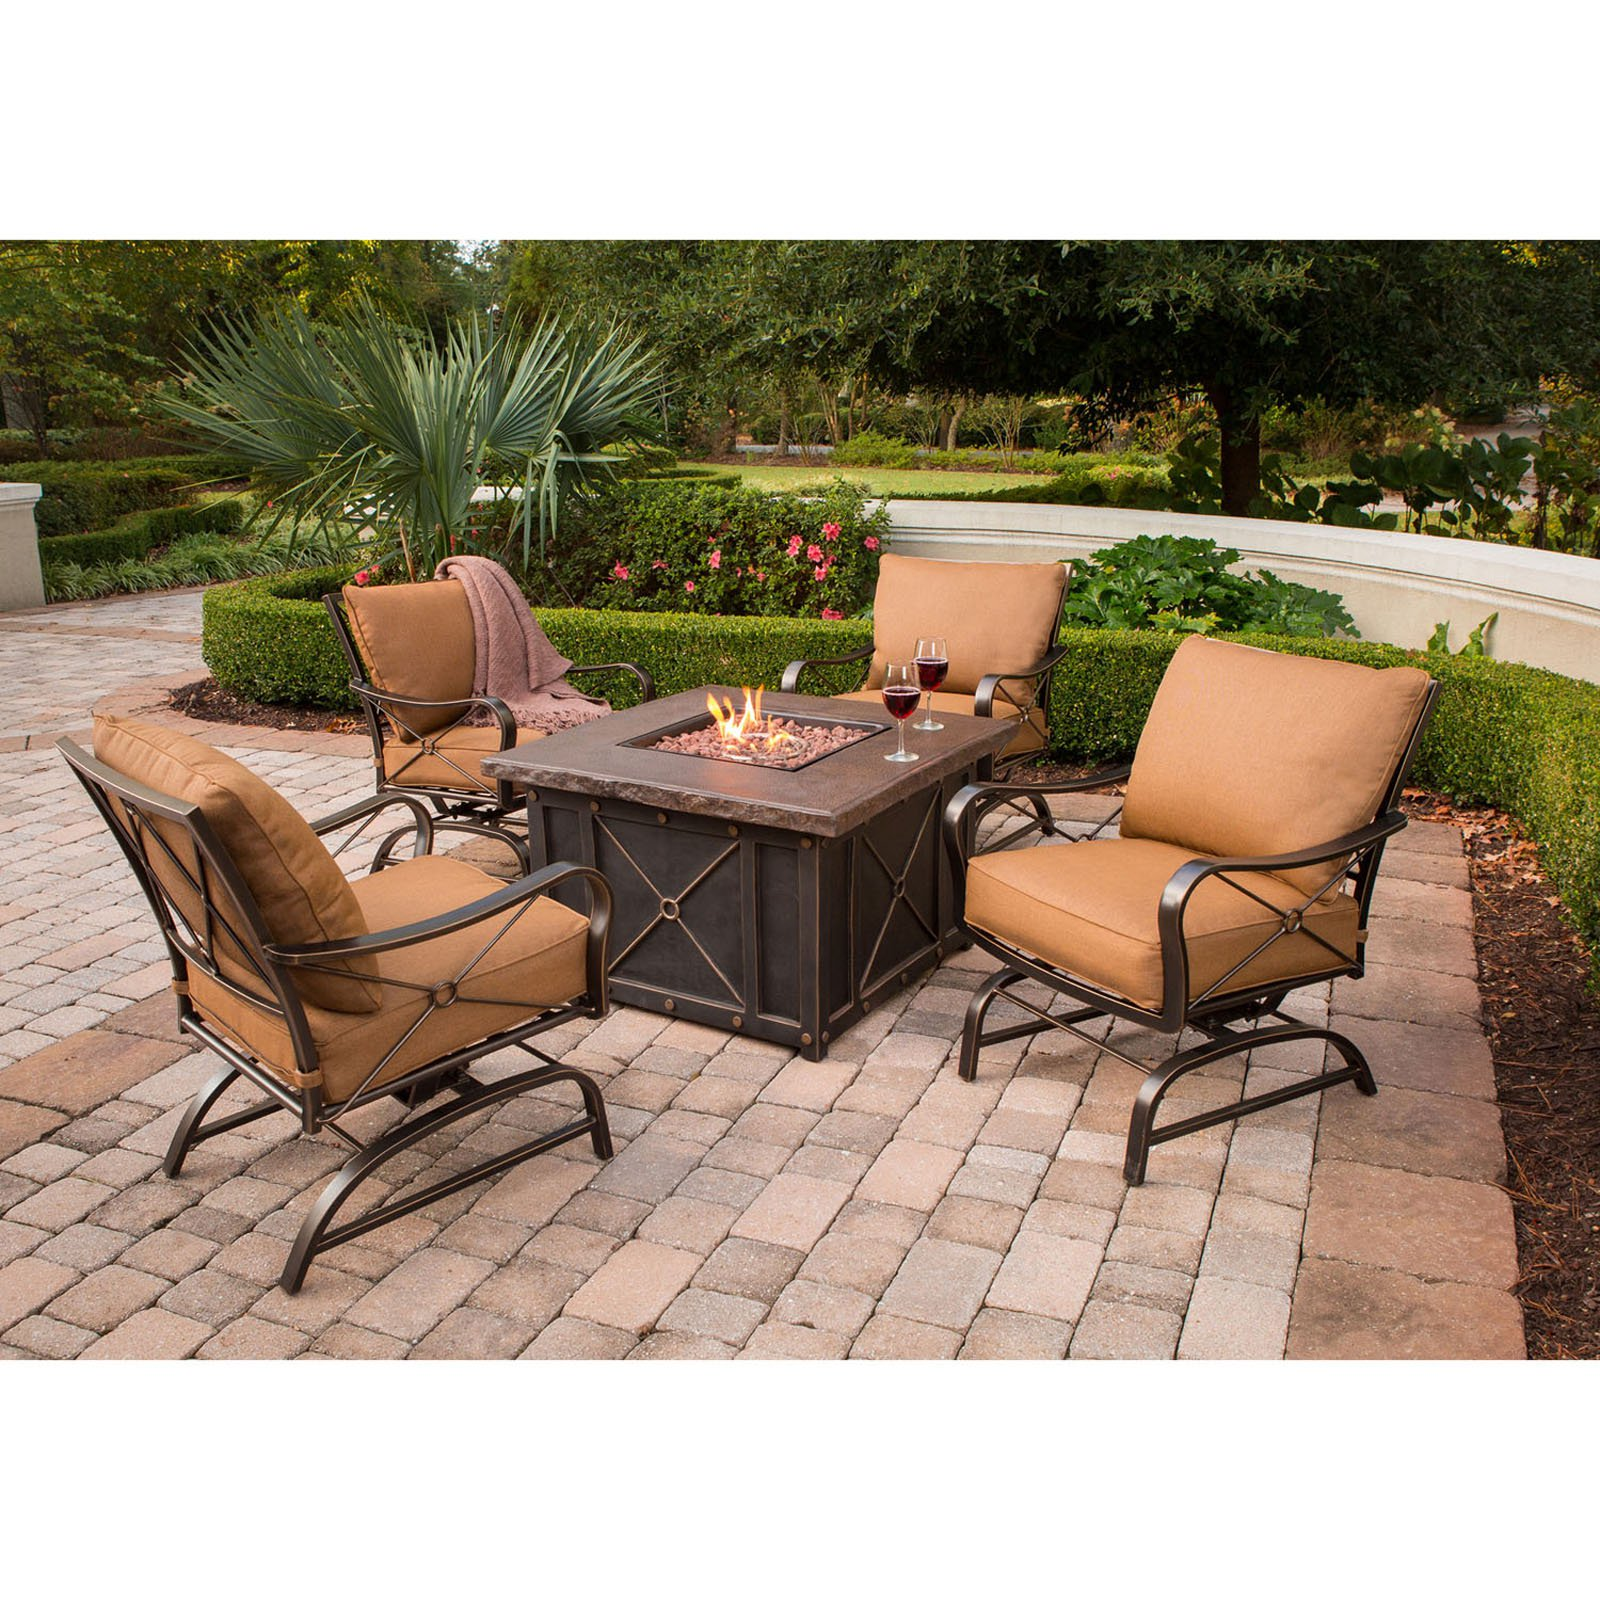 Hanover Outdoor Summer Nights Aluminum 5-Piece Lounge Set with DuraStone Fire Pit Table, Desert Sunset